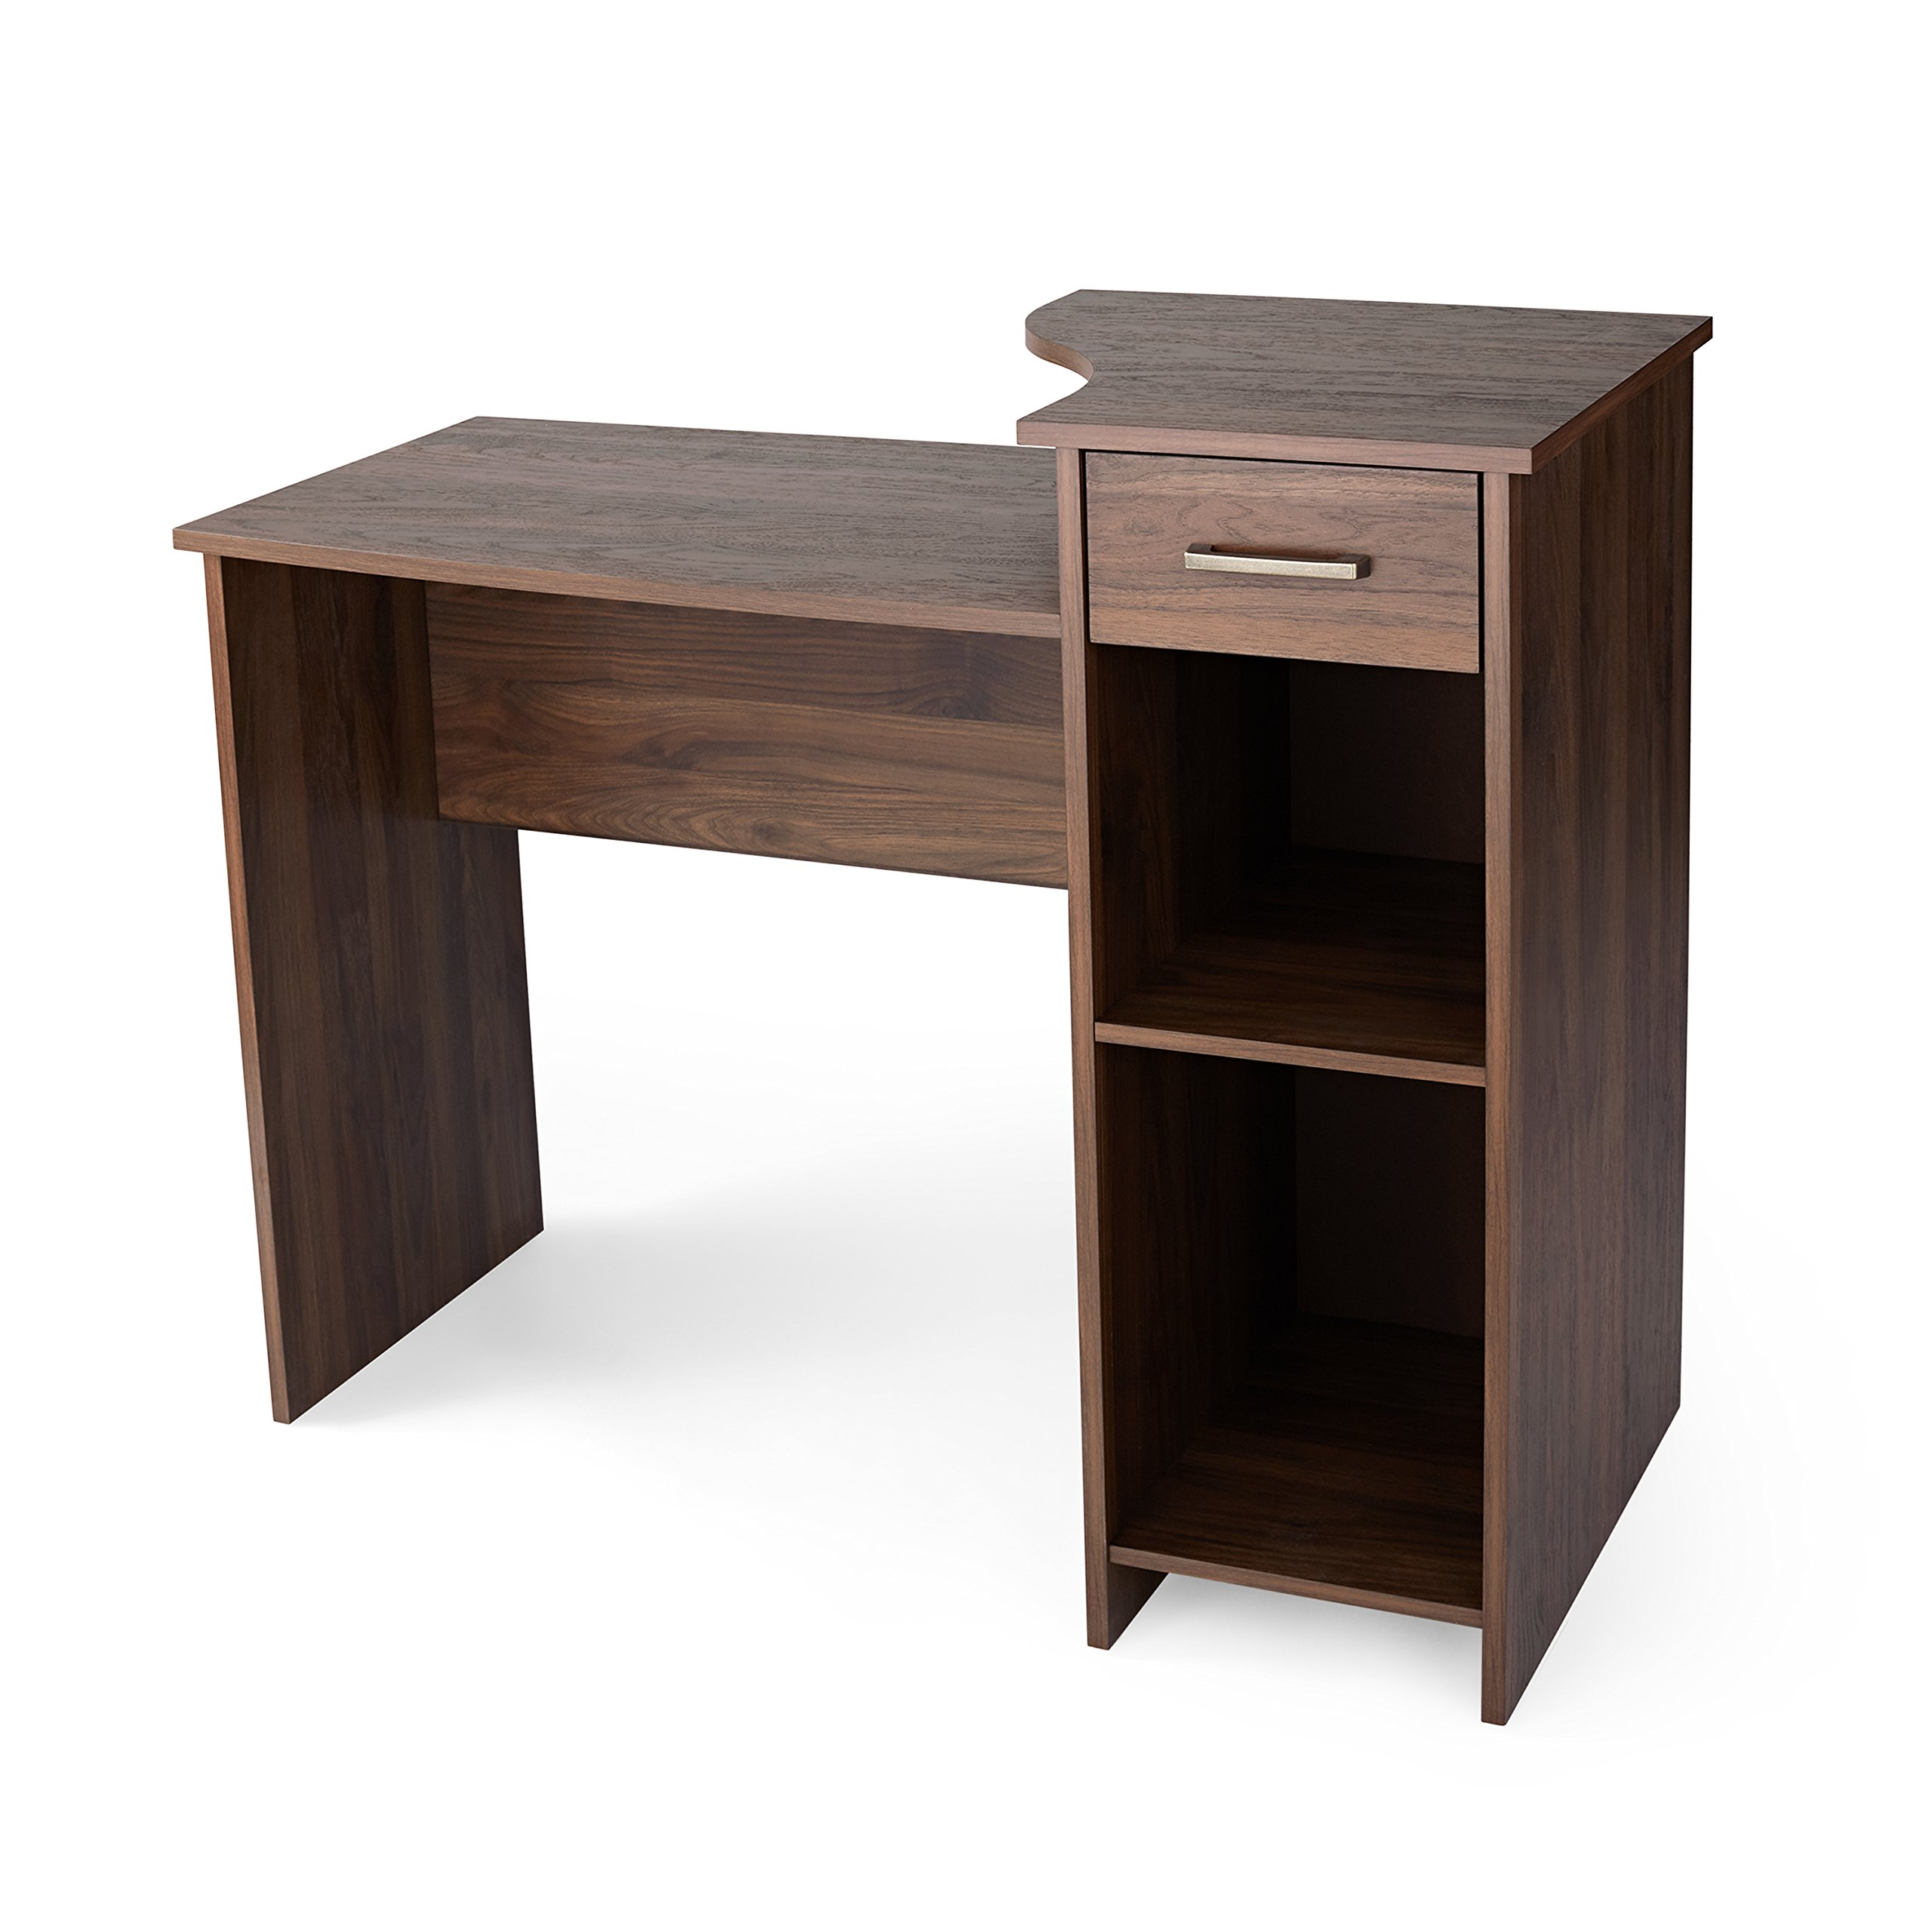 Mainstays Engineered Wood Student Desk with Adjustable Storage Shelf & Drawer in Canyon Walnut Finish